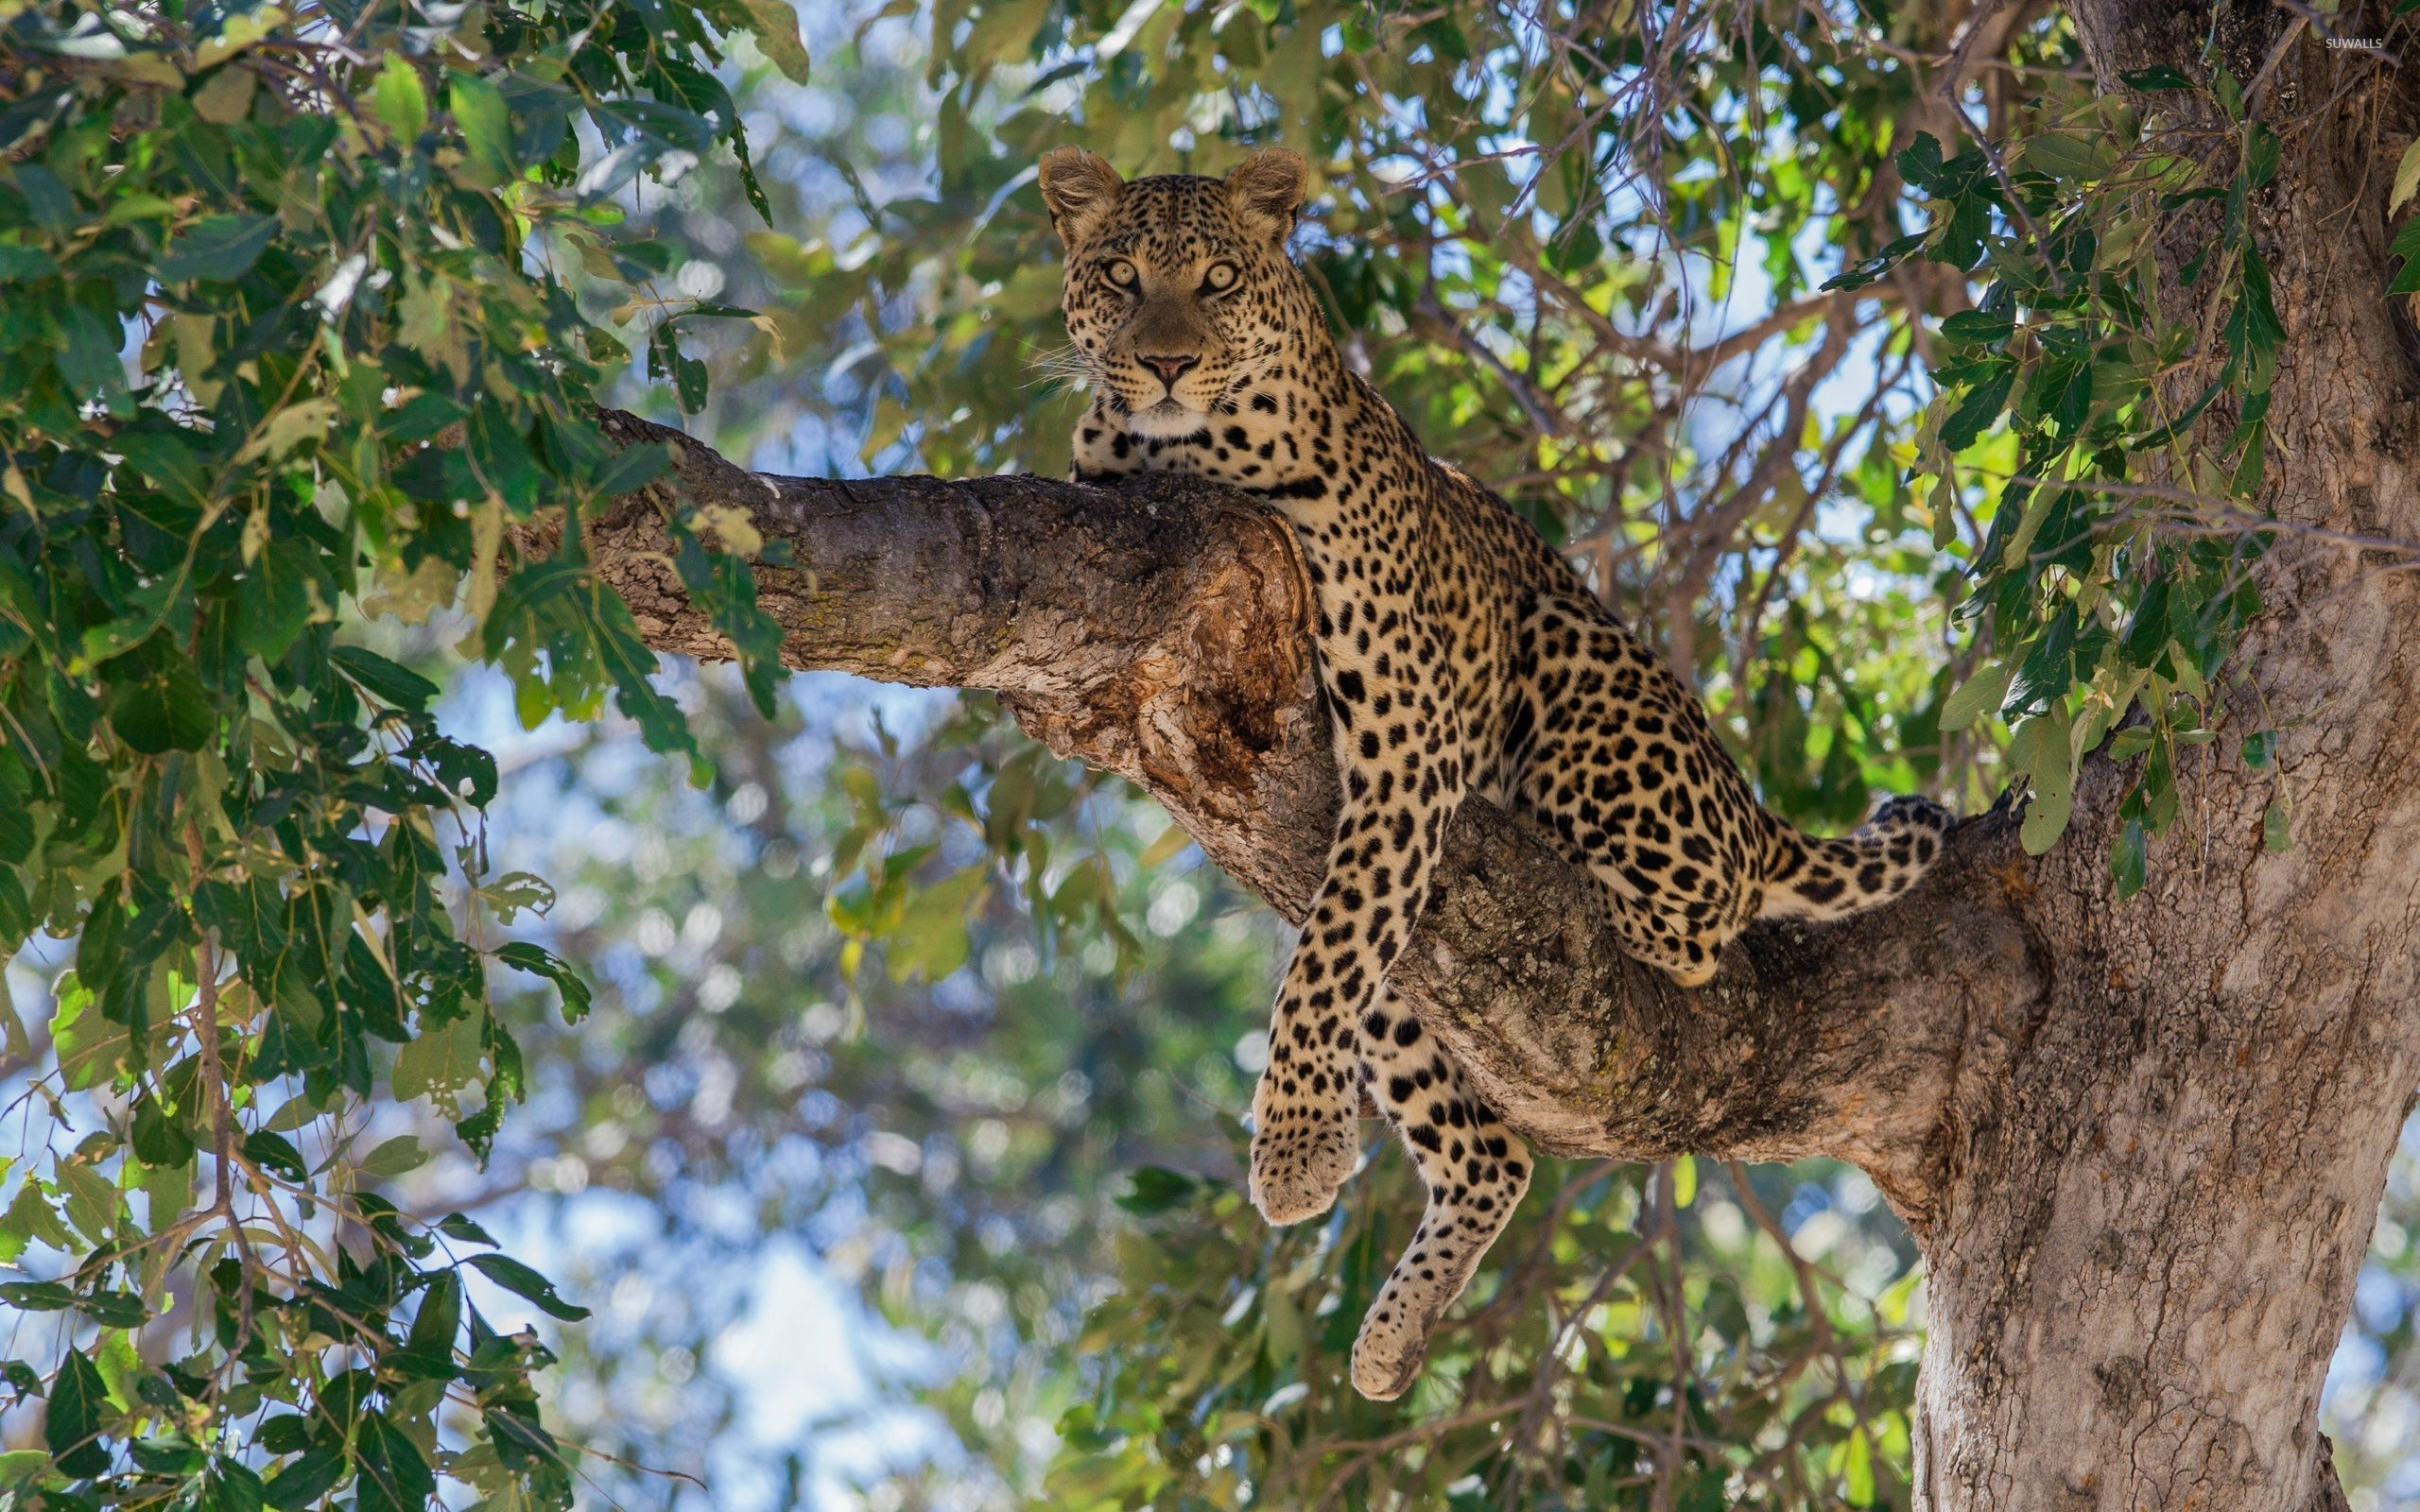 Leopard on a tree wallpaper - Animal wallpapers - #27244